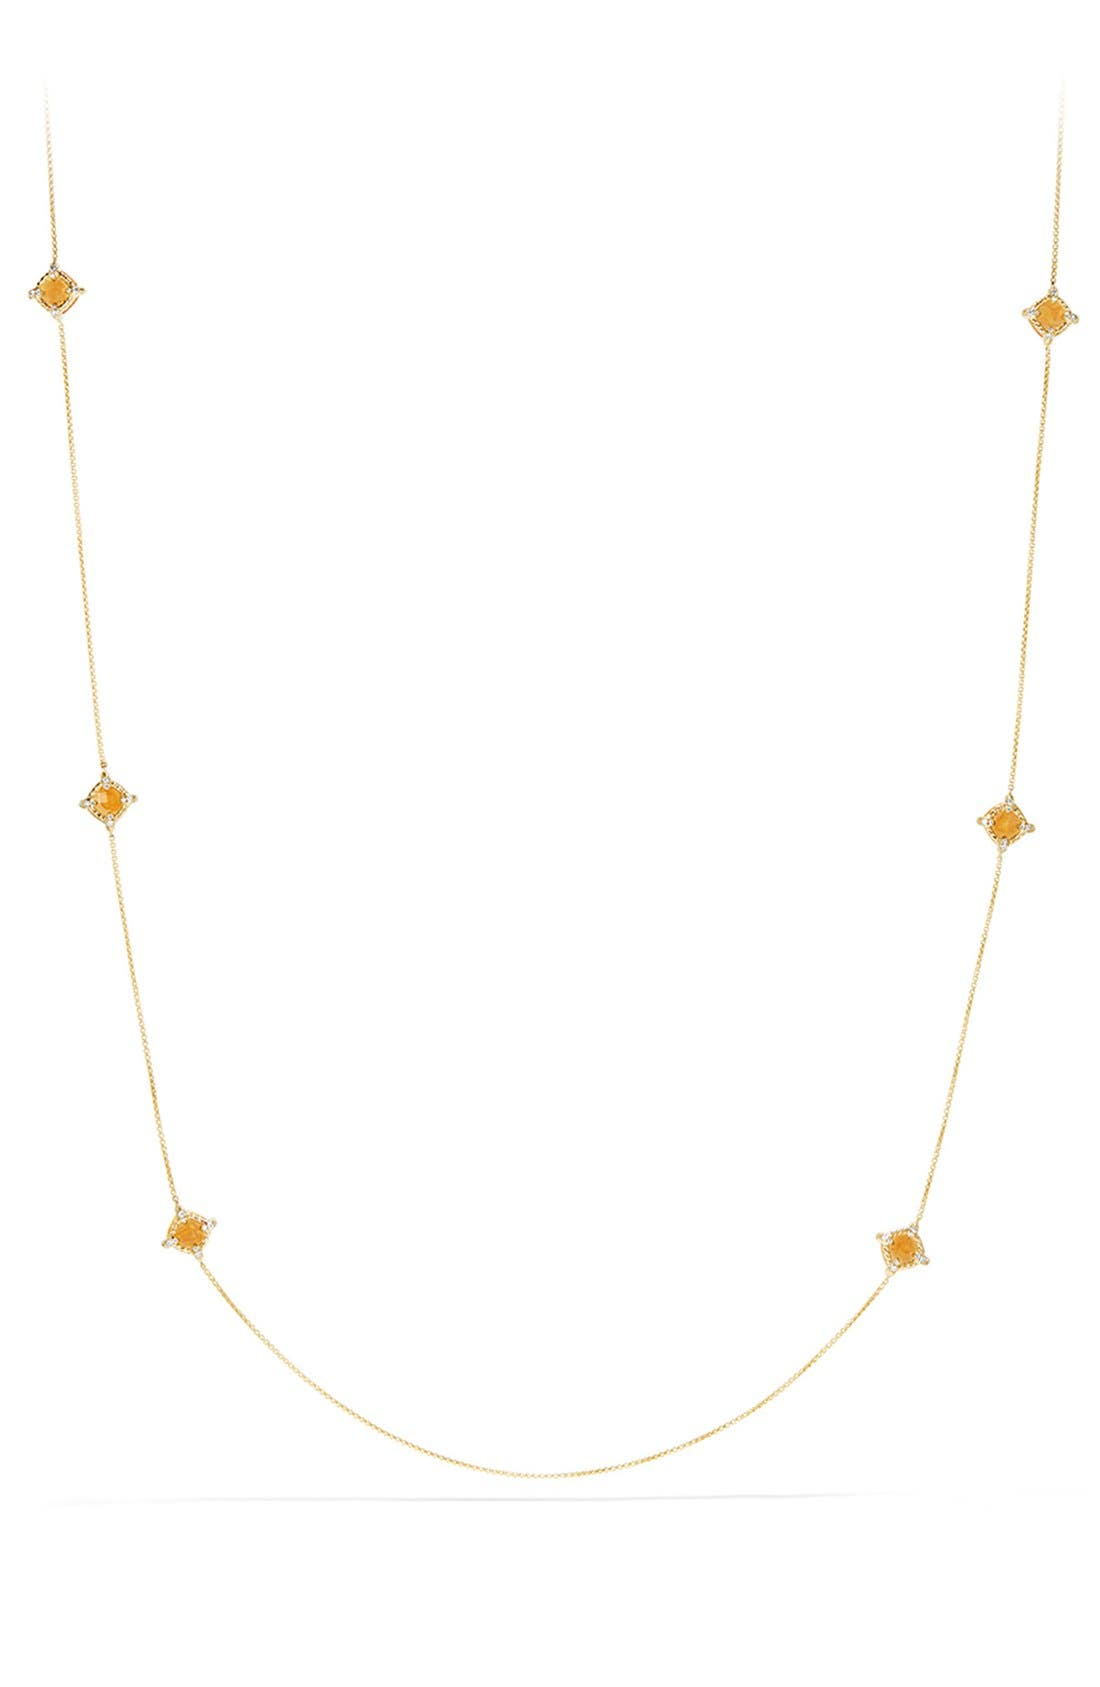 'Châtelaine' Long Semiprecious Stone Necklace with Diamonds,                             Alternate thumbnail 2, color,                             Citrine